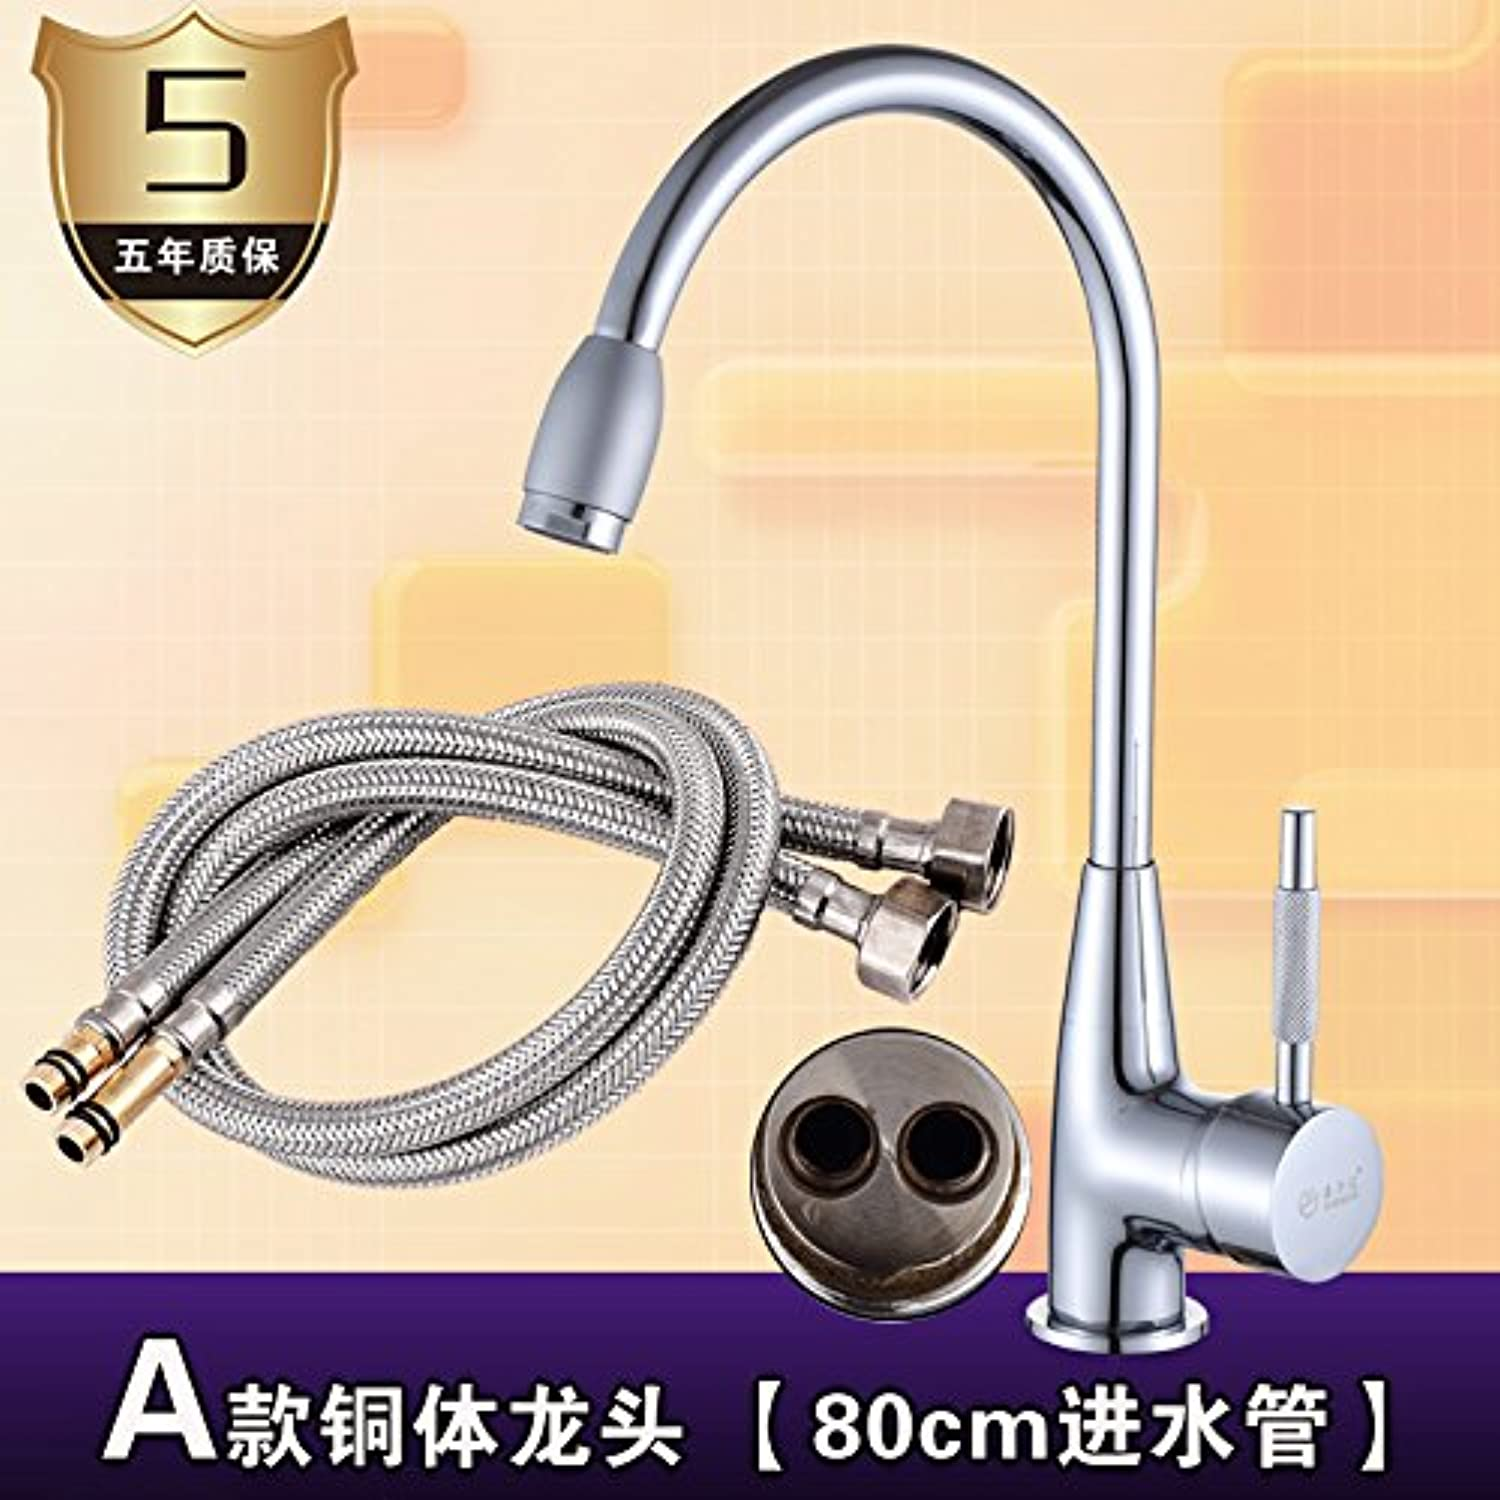 SunSui Kitchen faucet, all copper hot and cold water, giraffe, Red Crowned Crane faucet, revolving hot and cold dish basin,A brass material with 80cm water pipe 2